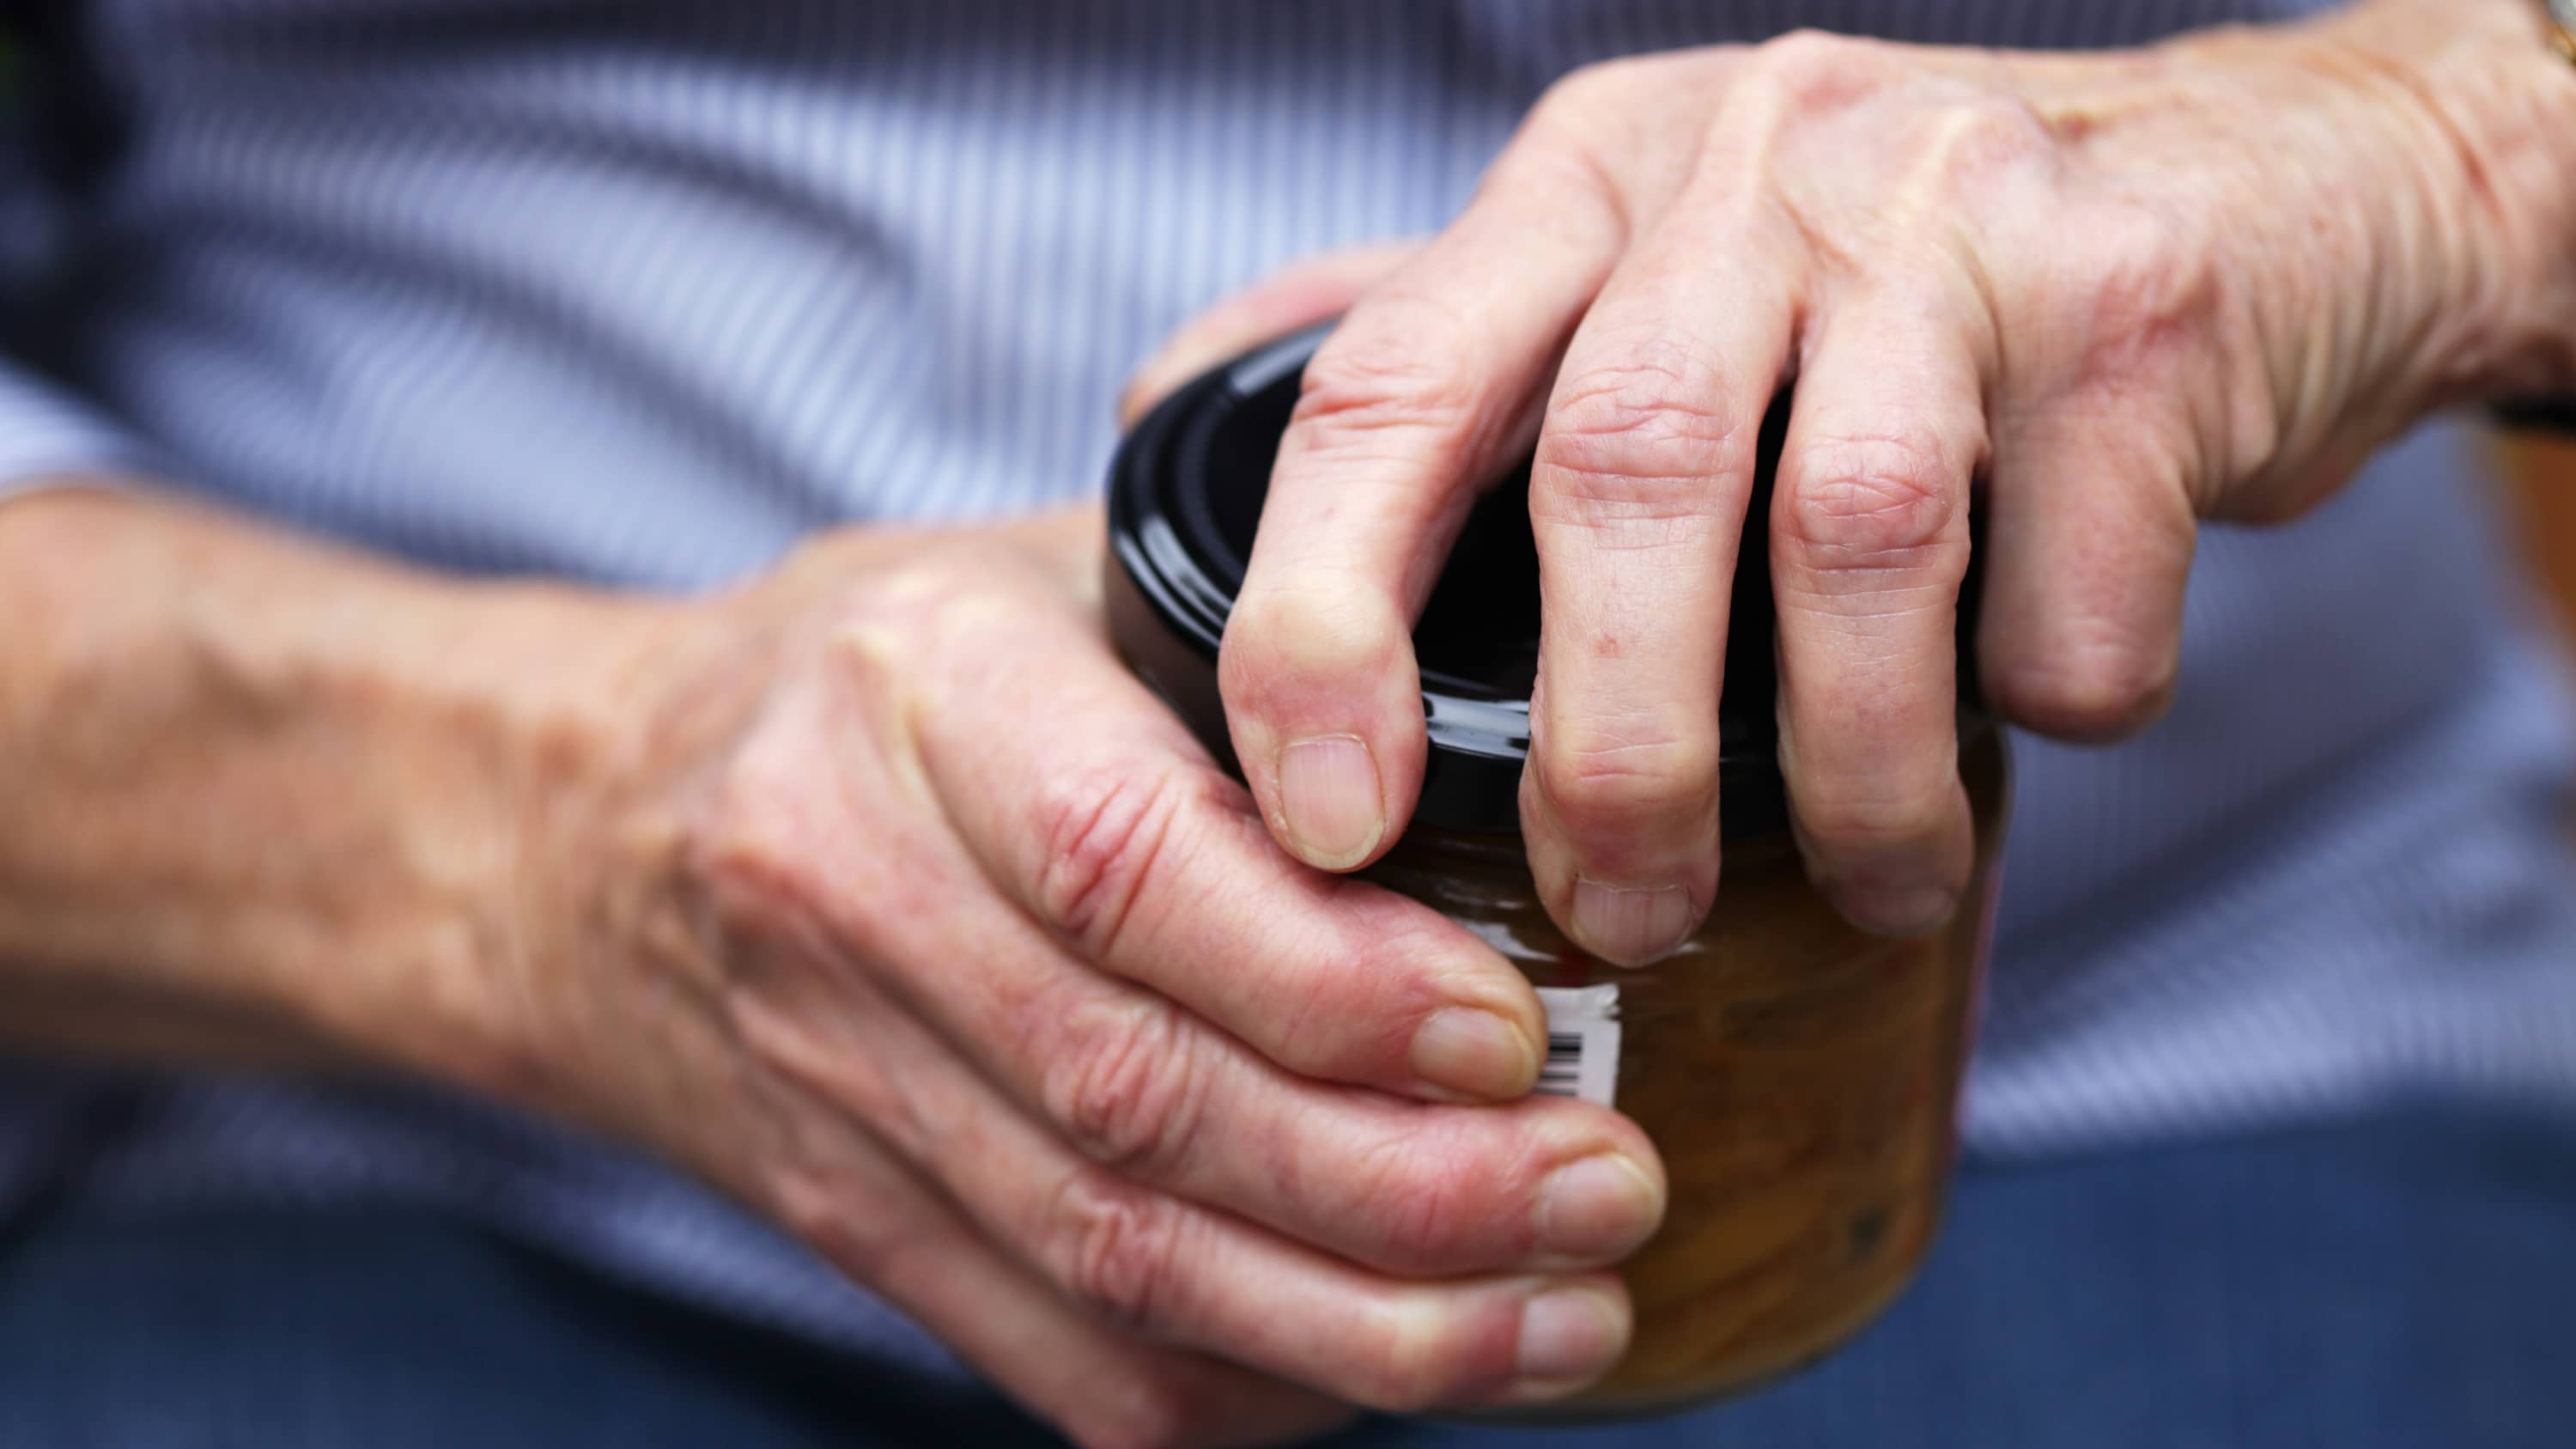 Older person with arthritis having difficulty opening a jar